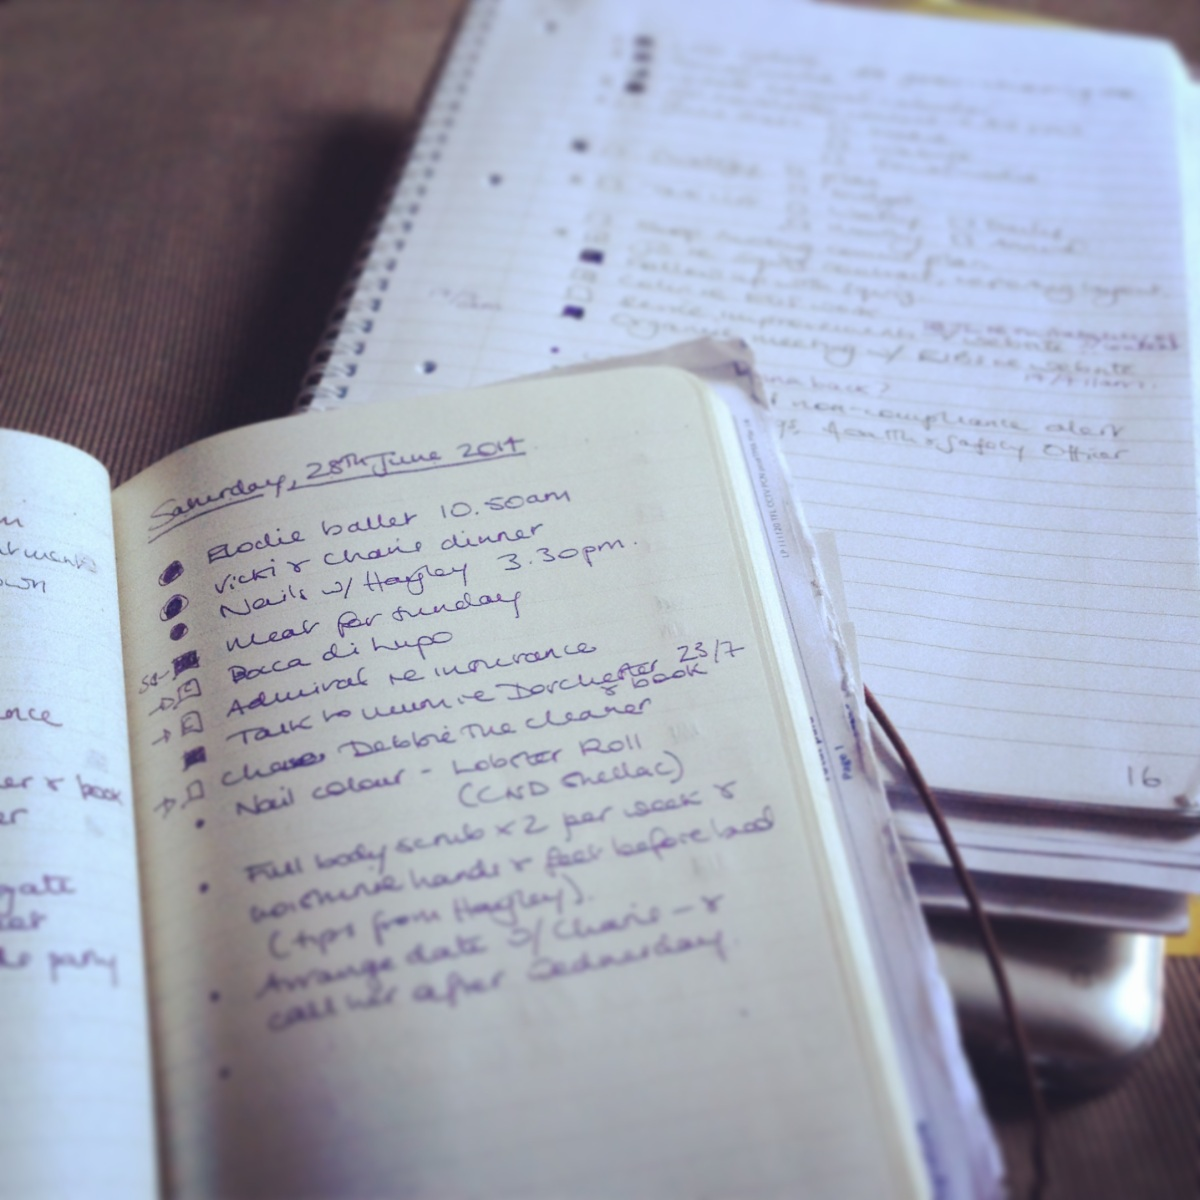 Bullet journal basics: how to organise your life and stay on top of tasks